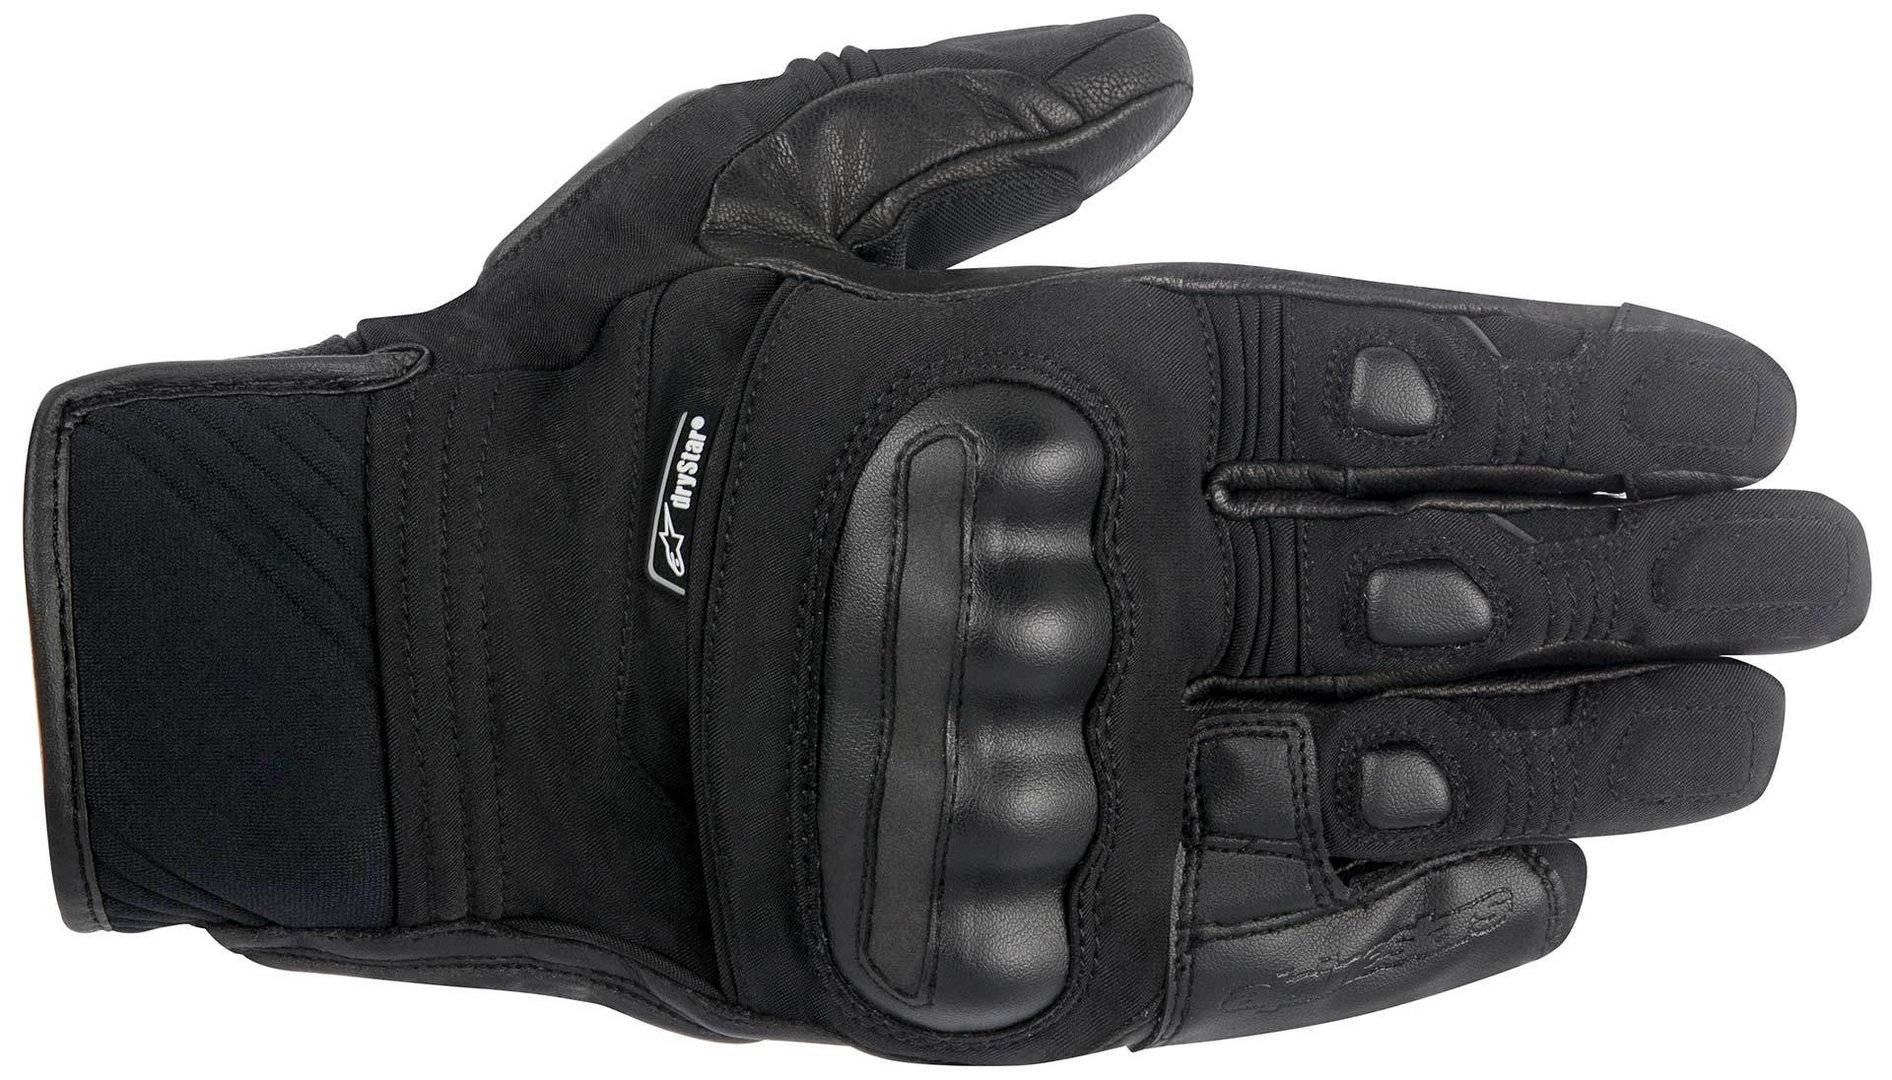 Alpinestars Corozal DryStar Waterproof Gloves Black XL